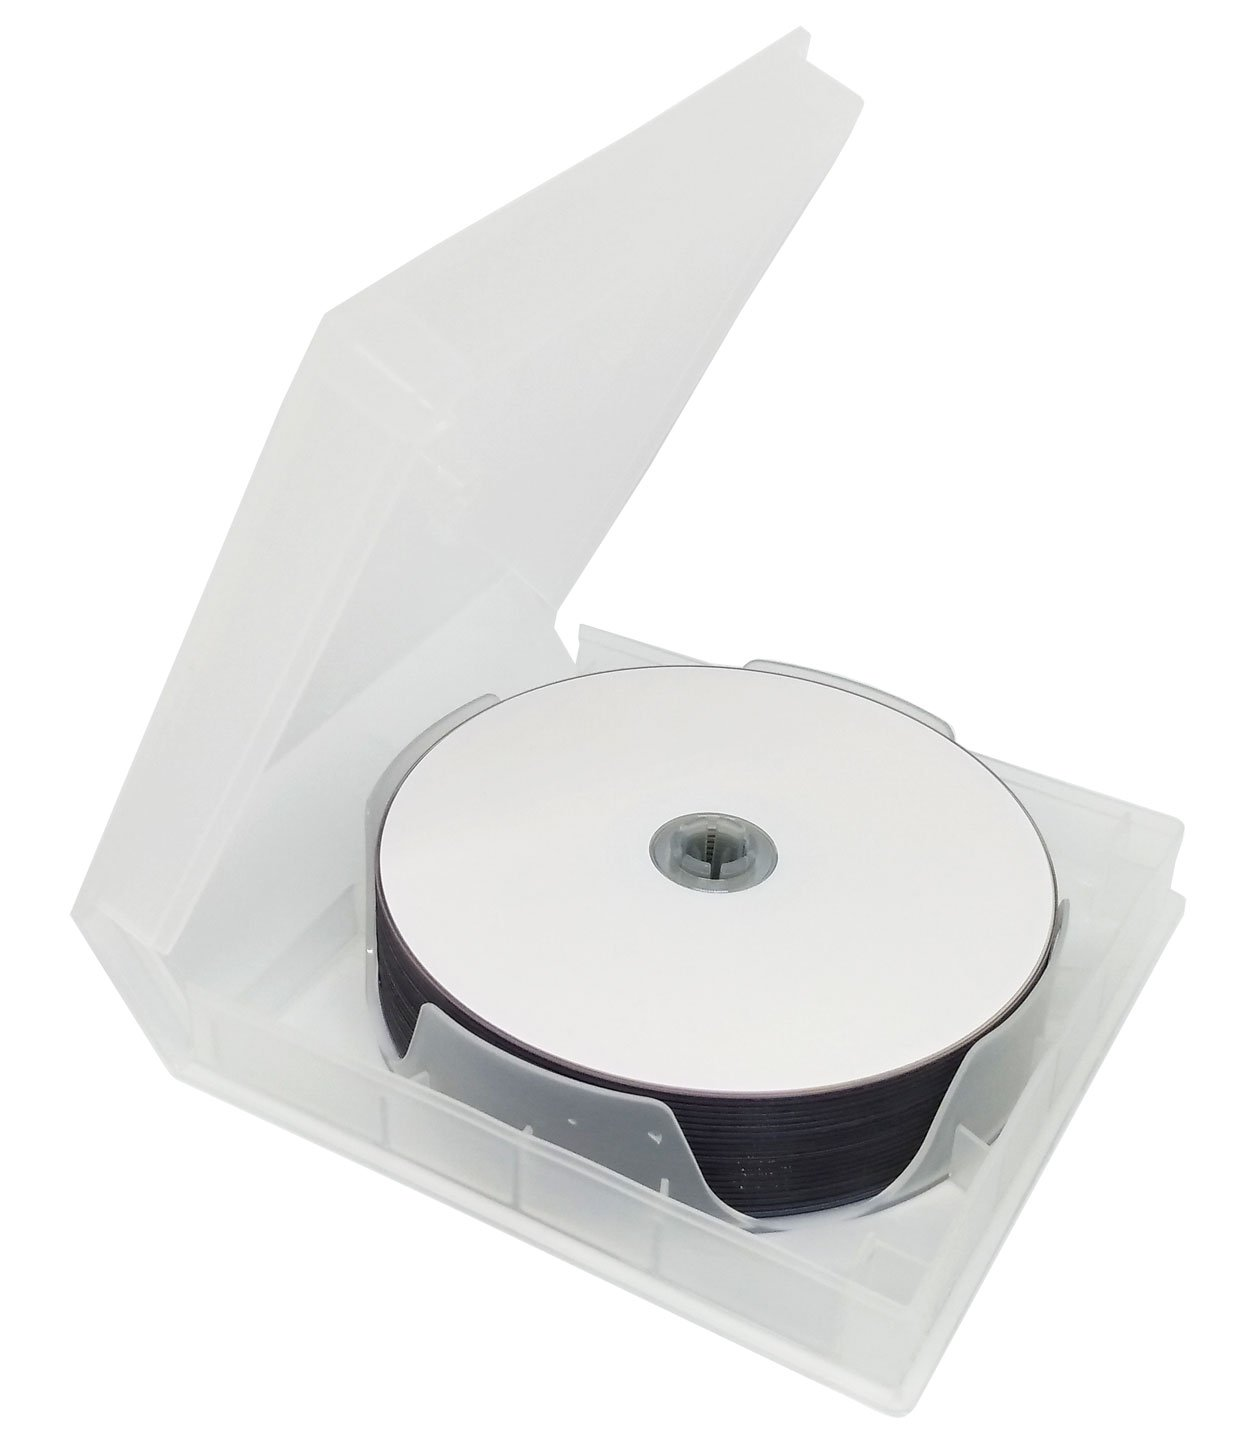 photo about Printable Dvd Rohlinge referred to as MP-Multimedia e.K. Box of 20 Spindle DVD Rohlinge Shiny